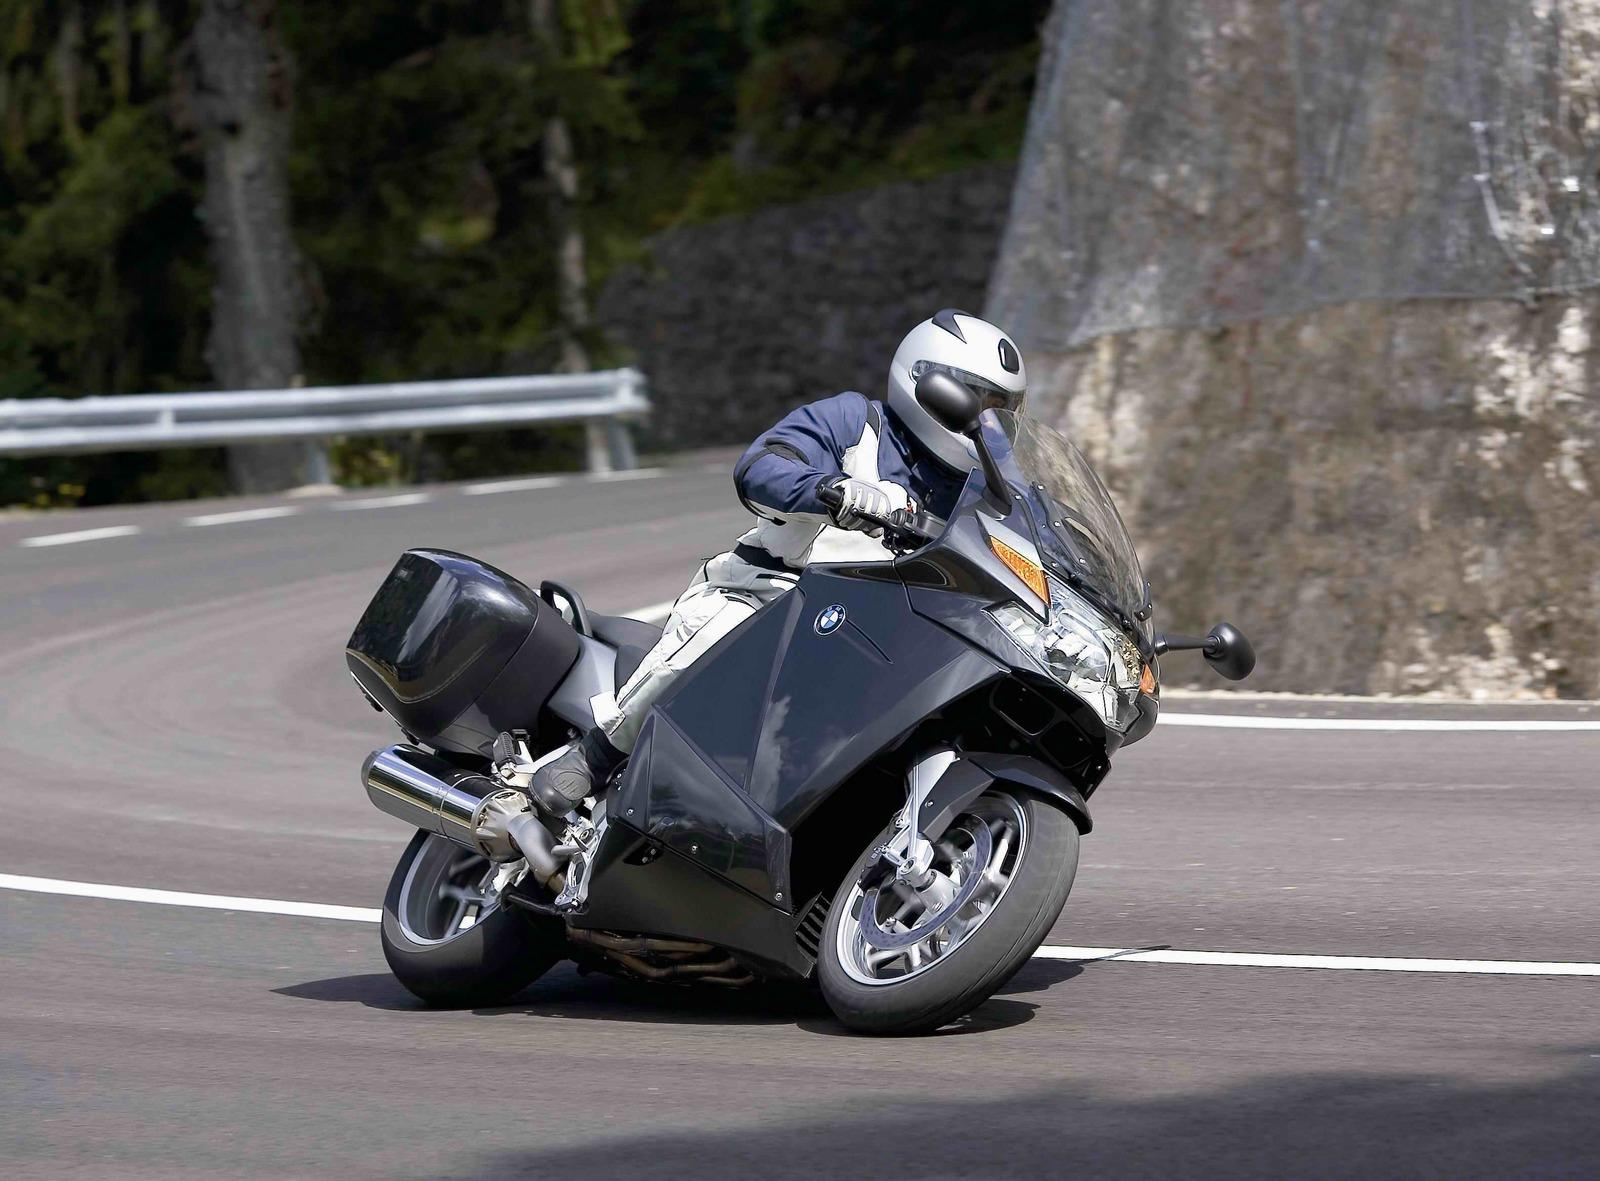 2006 bmw k 1200 gt picture 151753 motorcycle review. Black Bedroom Furniture Sets. Home Design Ideas